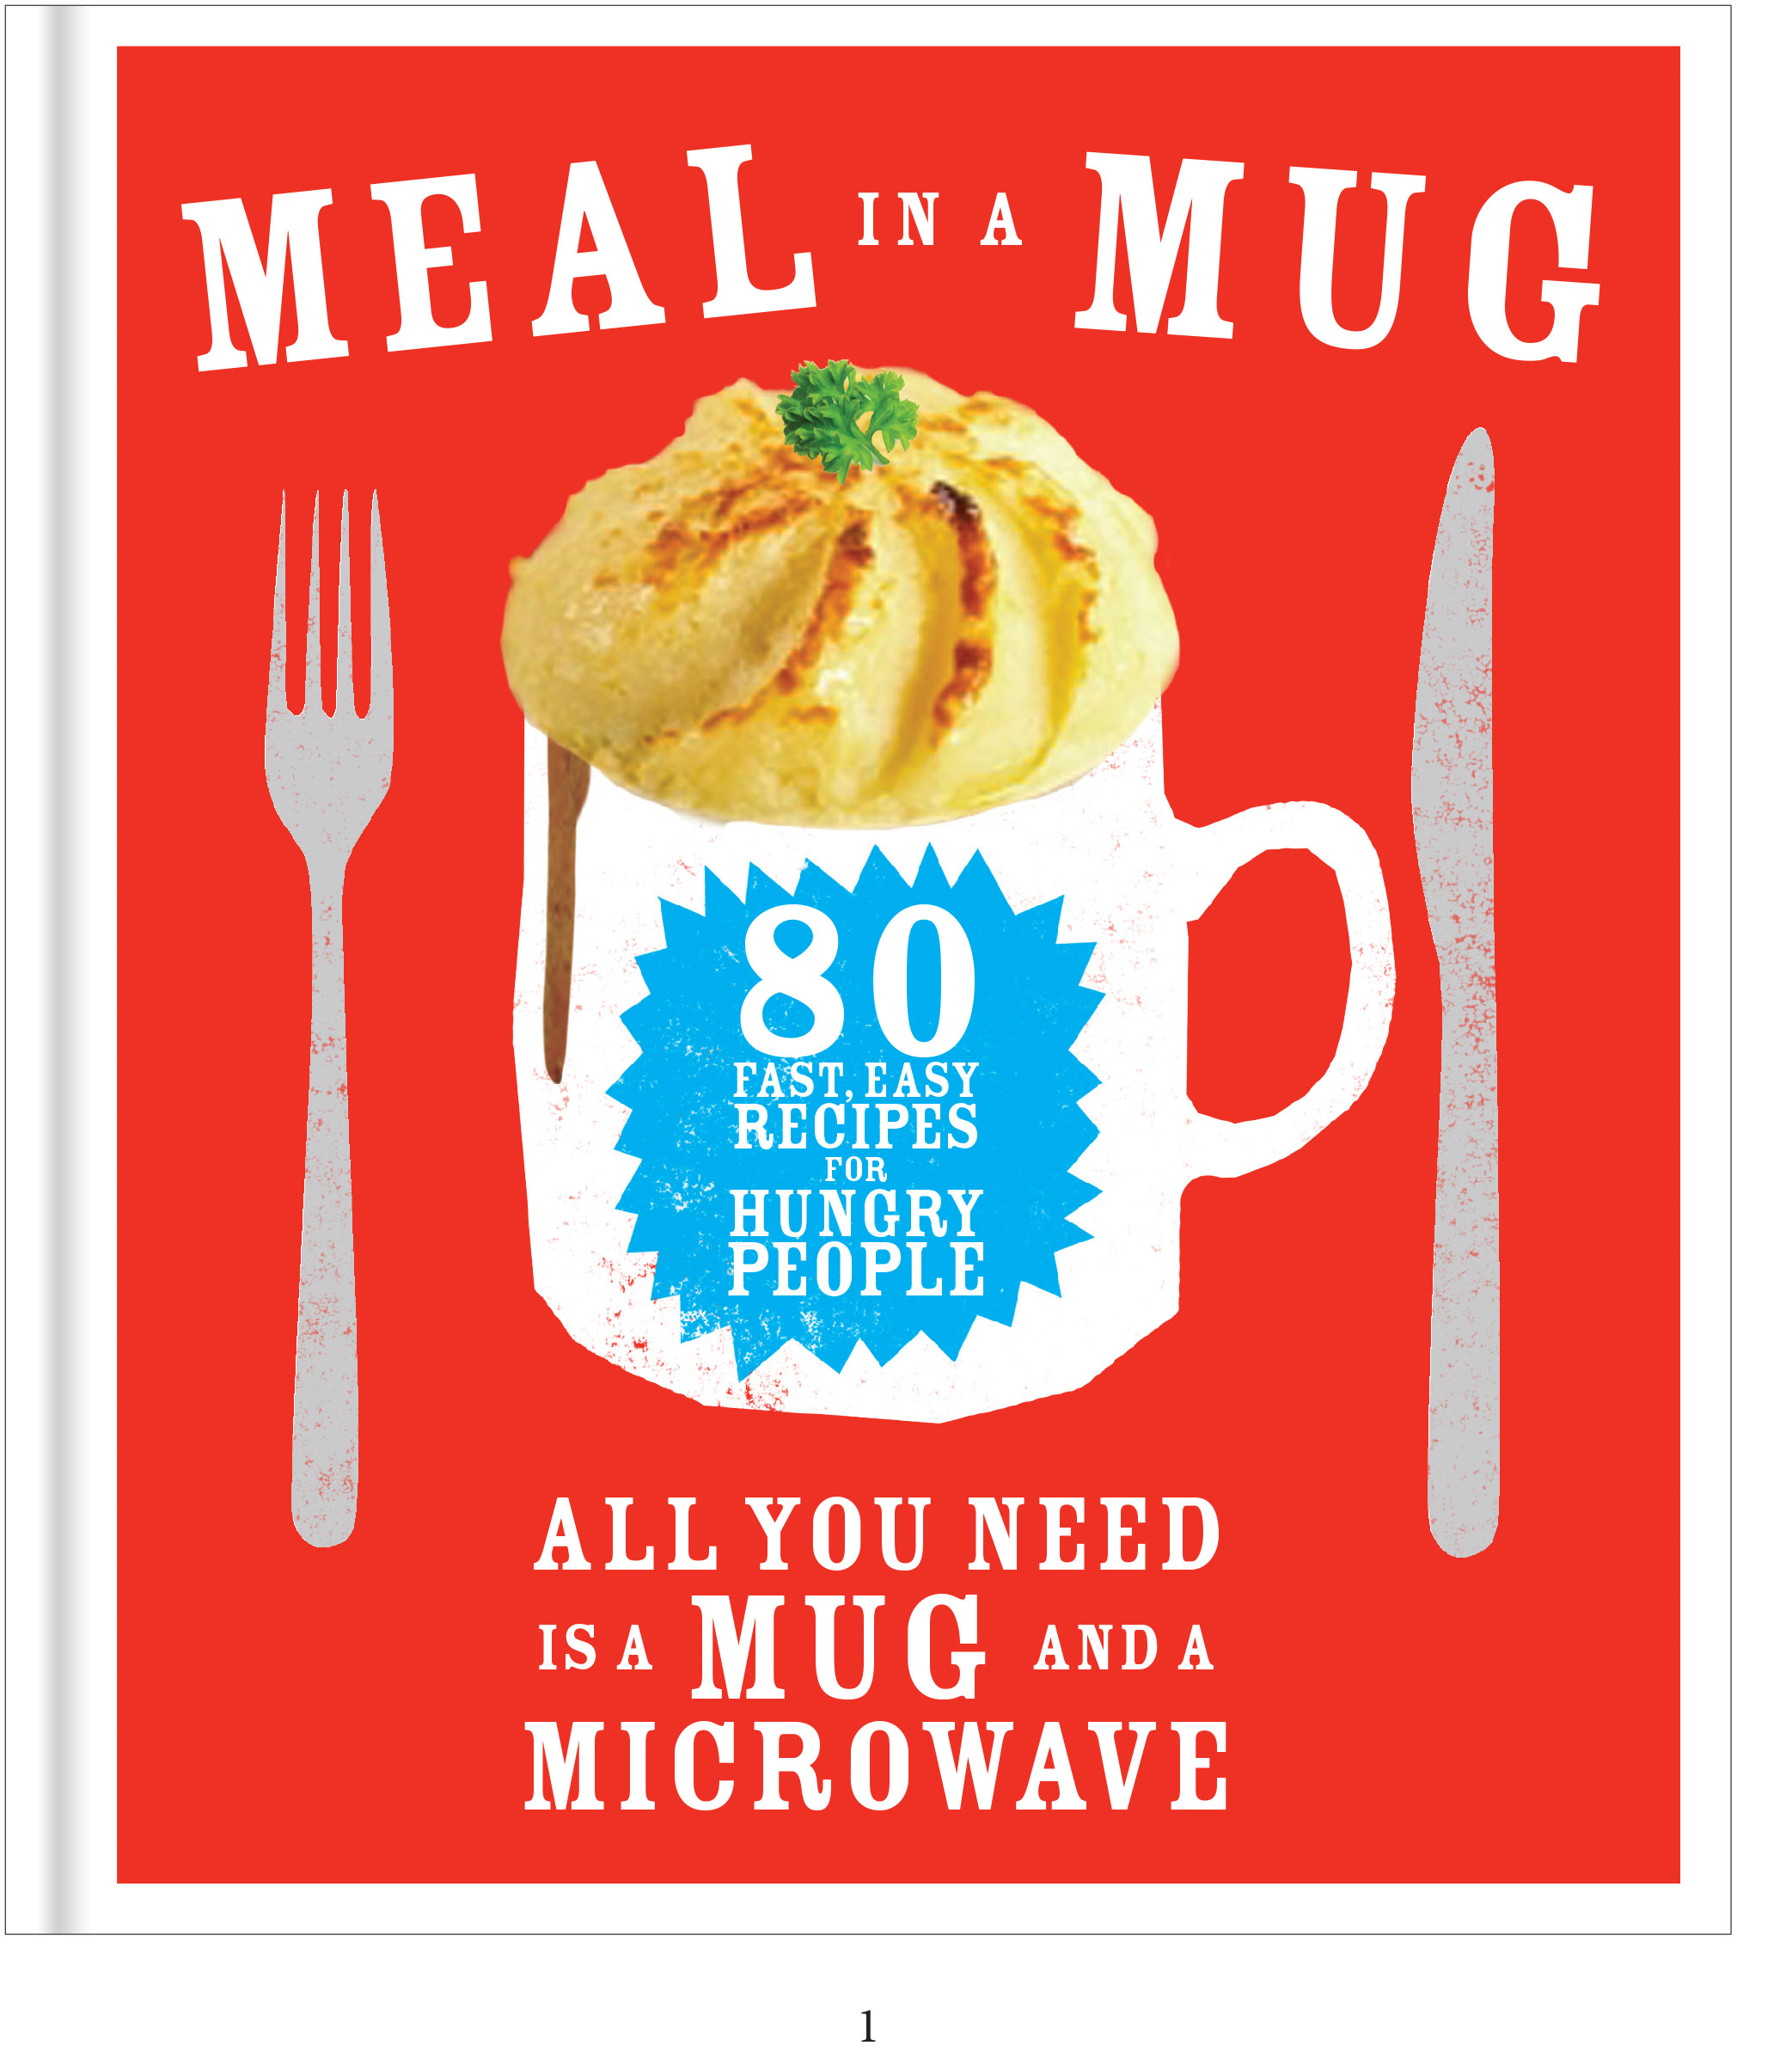 Meal in a Mug 80 fast,  easy recipes for hungry people - all you need is a mug and a microwave